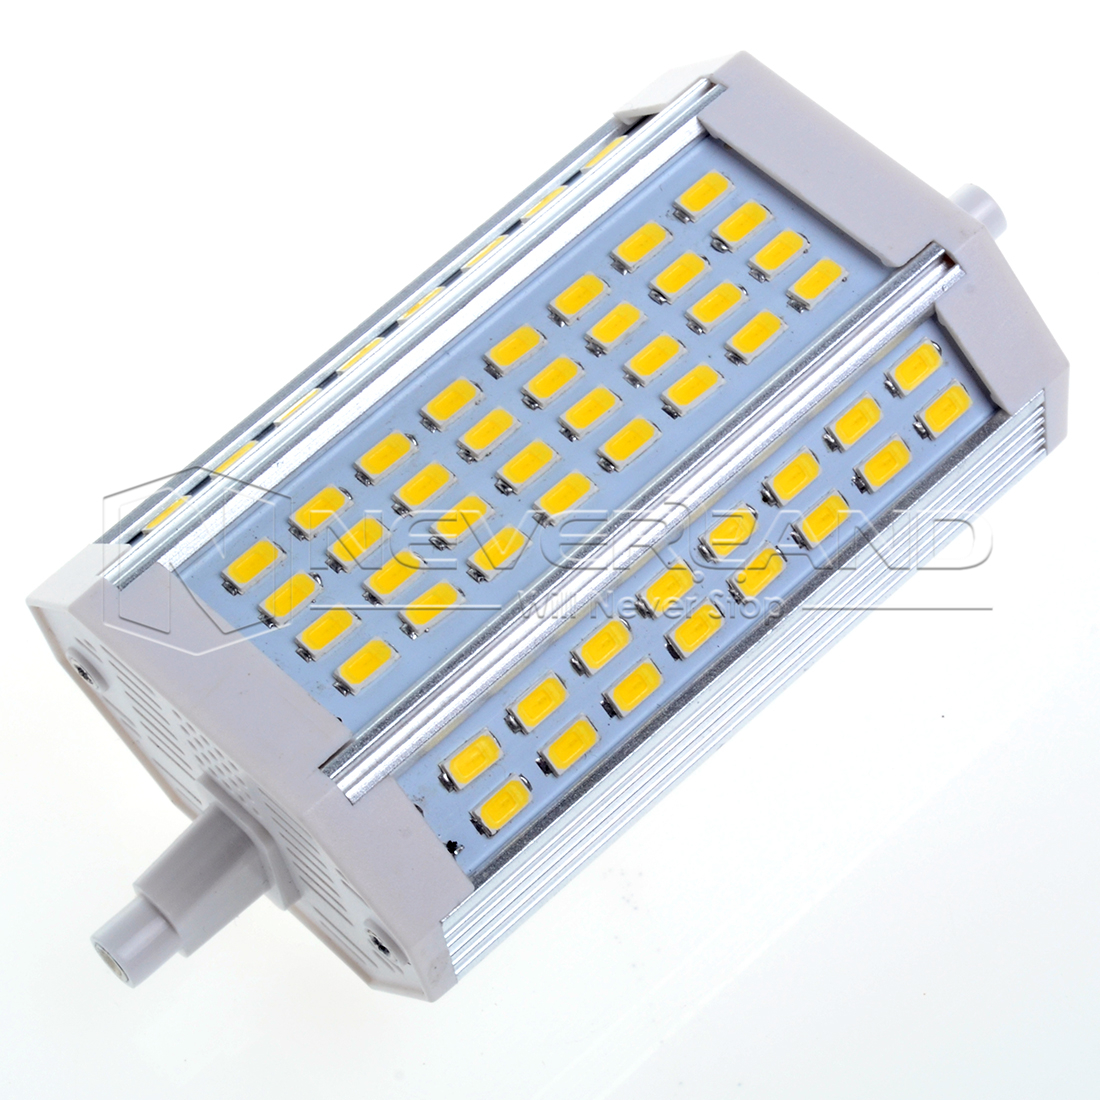 30w r7s led 5630 smd lampe leuchtmittel f r stehlampe deckenfluter baustrahler ebay. Black Bedroom Furniture Sets. Home Design Ideas